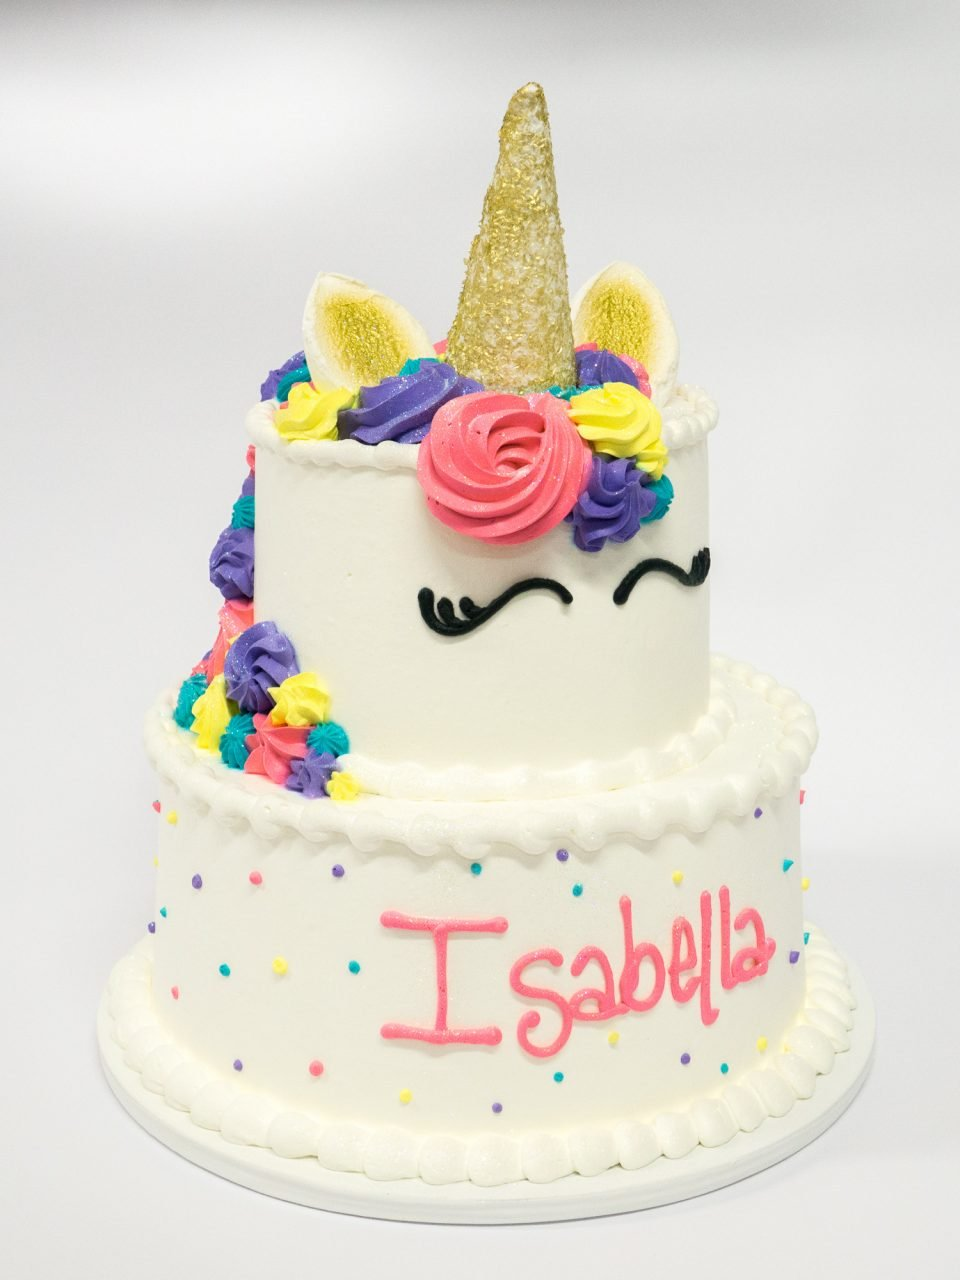 Brilliant Photo Of A Unicorn 2 Tier Cake Pattys Cakes And Desserts Personalised Birthday Cards Petedlily Jamesorg